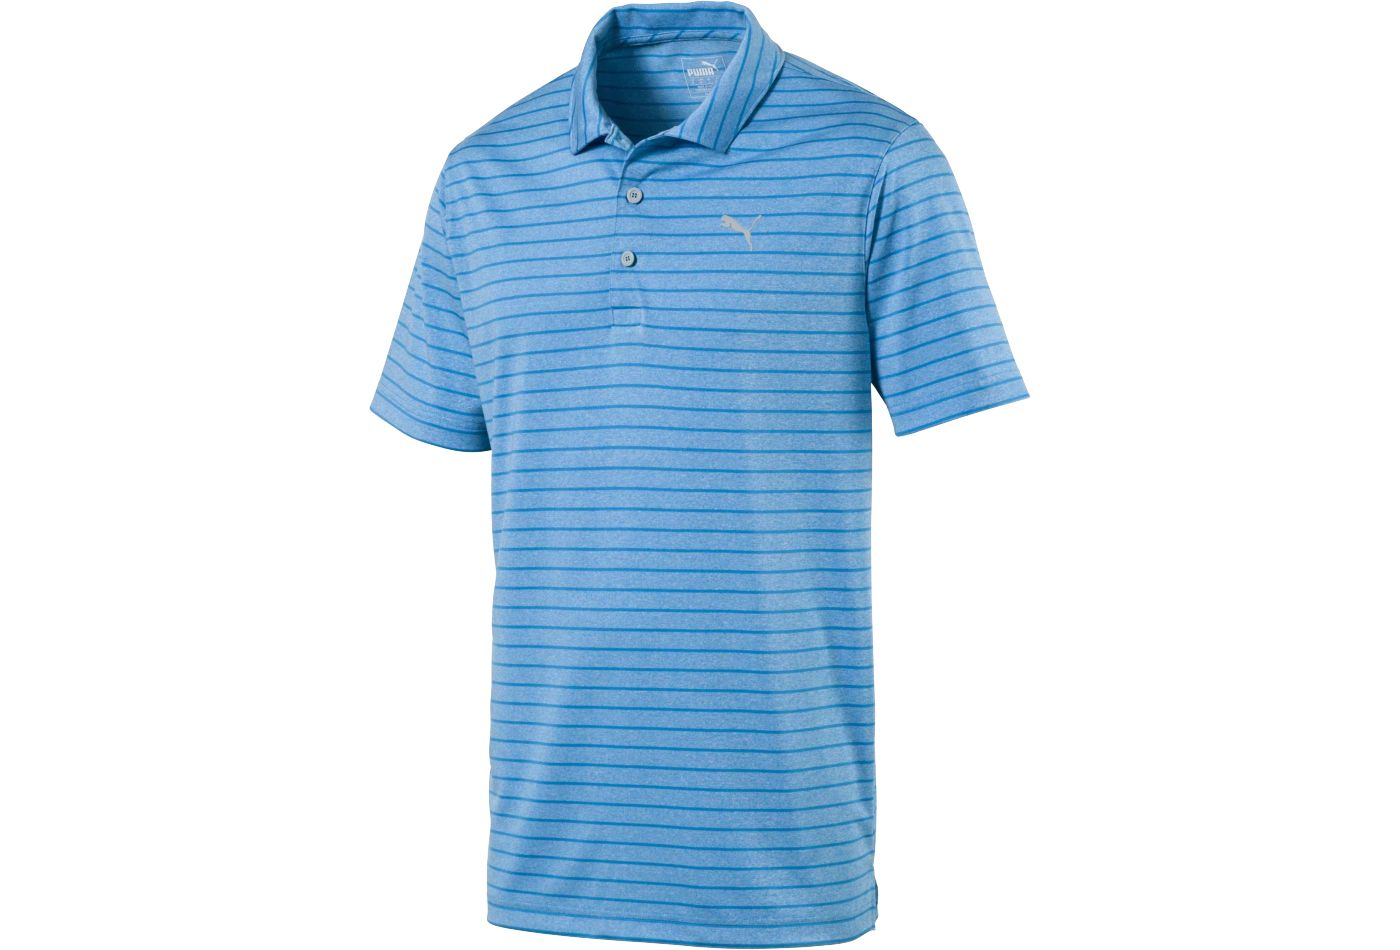 PUMA Men's Rotation Stripe Golf Polo